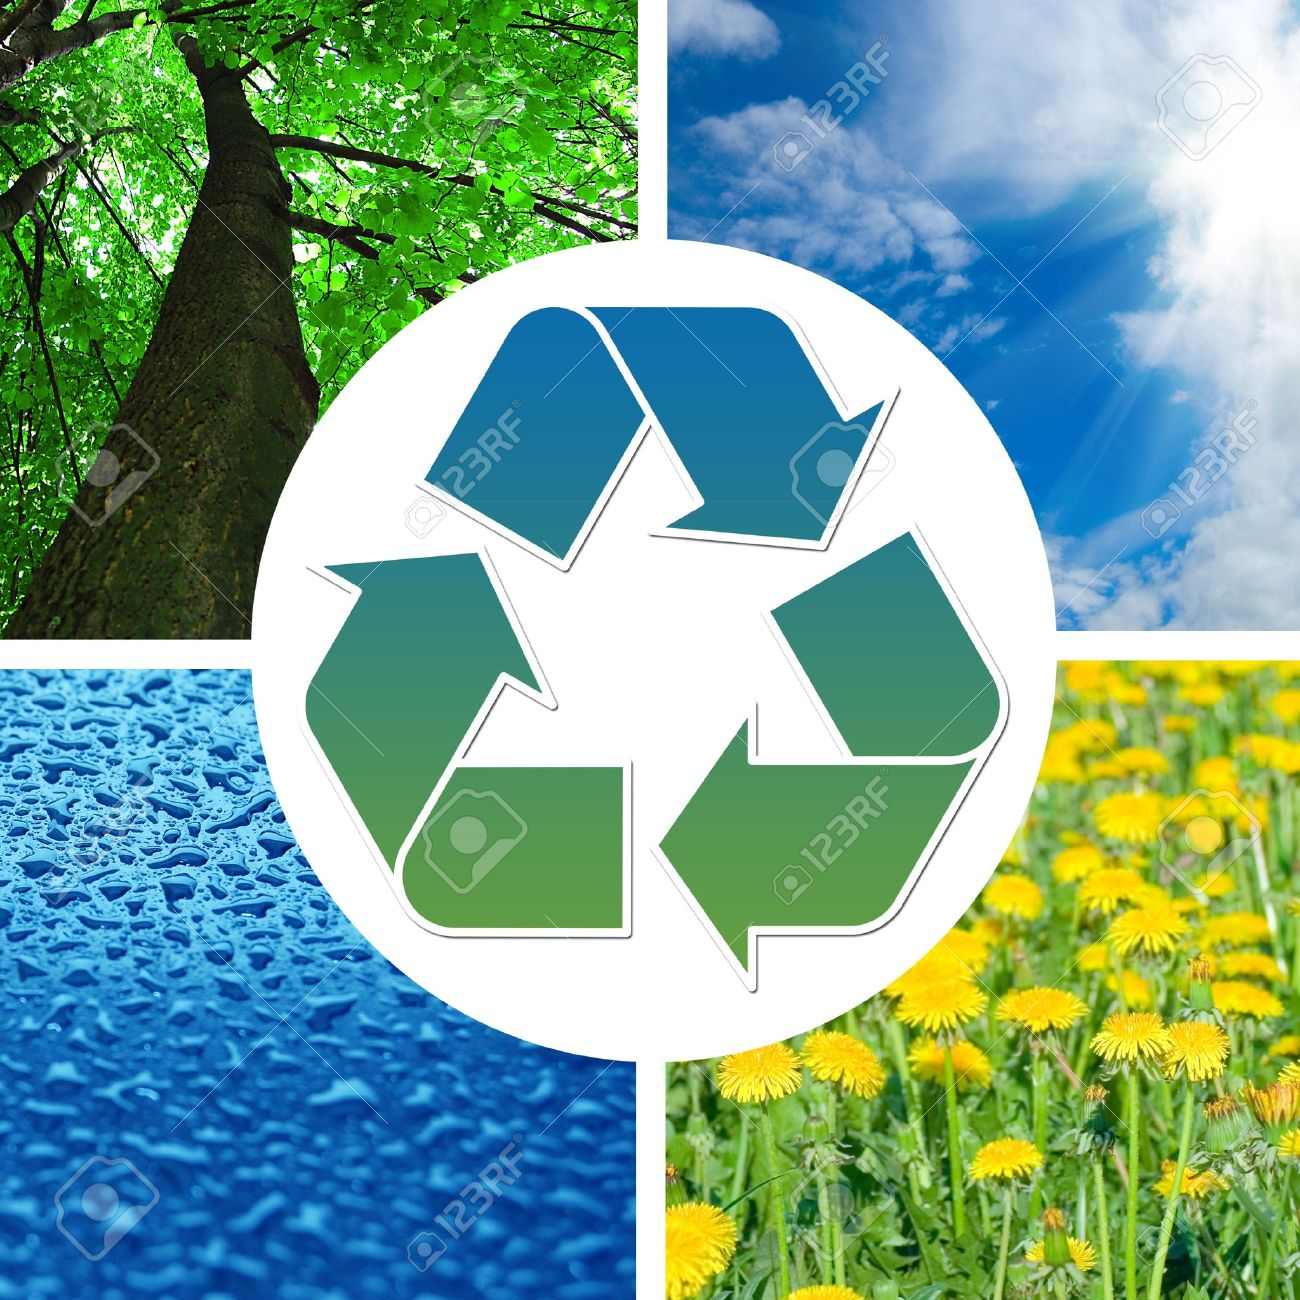 Conceptual recycling sign with images of nature Stock Photo - 7132058